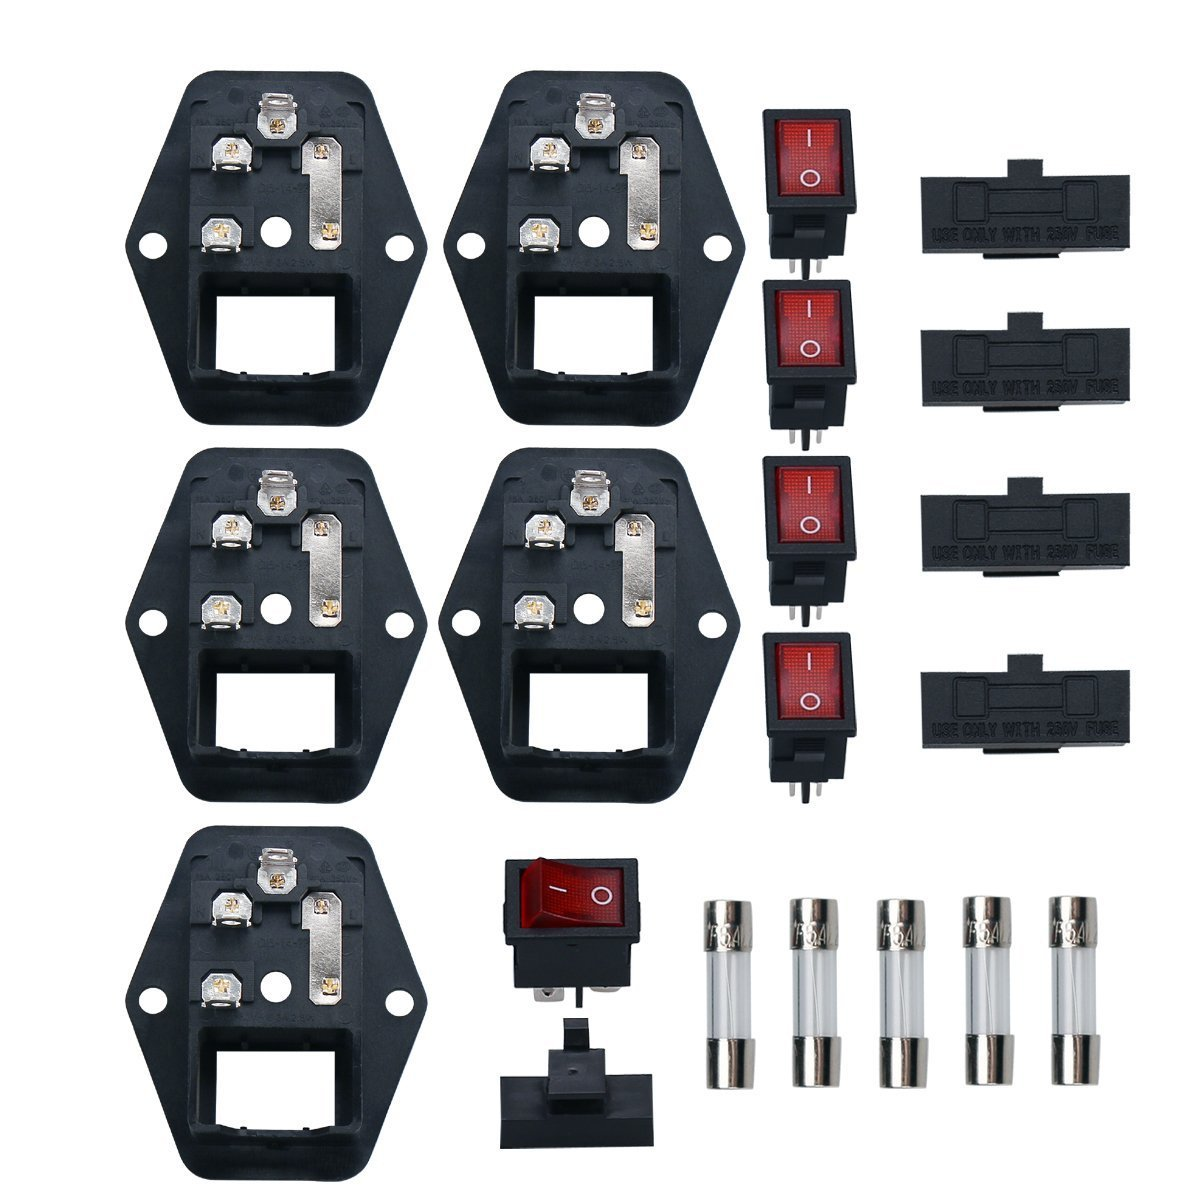 Urbest 5pcs Socket Switch Inlet Module 3pin 5a Fuse Amazoncom Plug Male Power 10a 250v 3 Iec320 C14 For Lab Equipment Medical Devices Home Audio